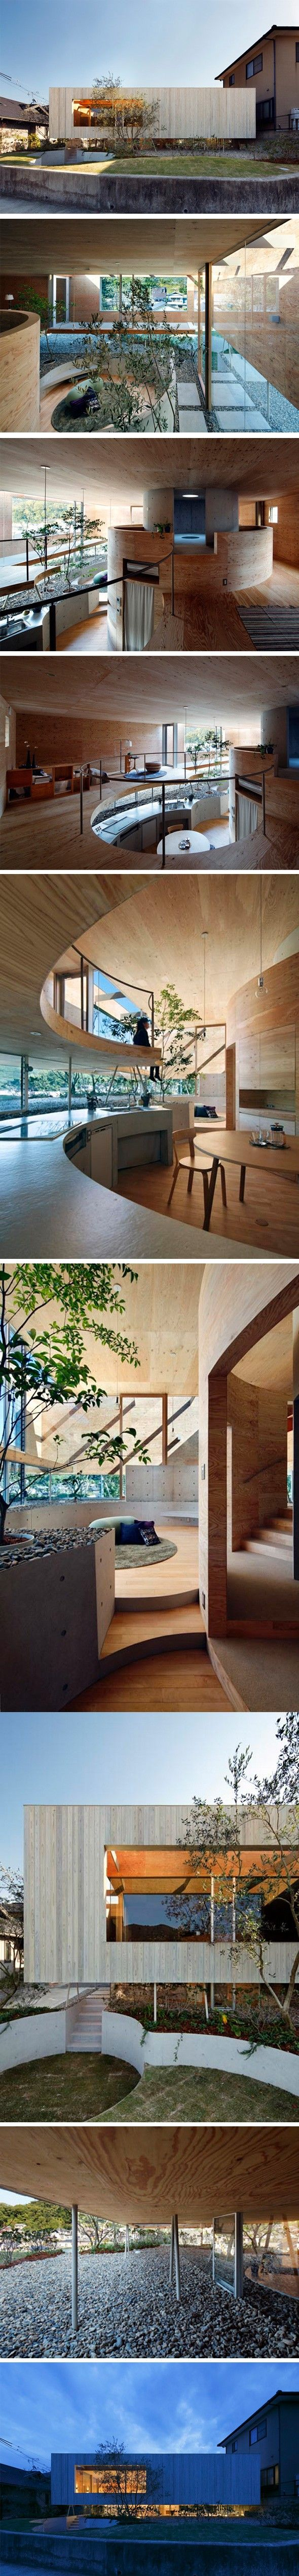 Best Architects Journal Ideas Only On Pinterest Architect